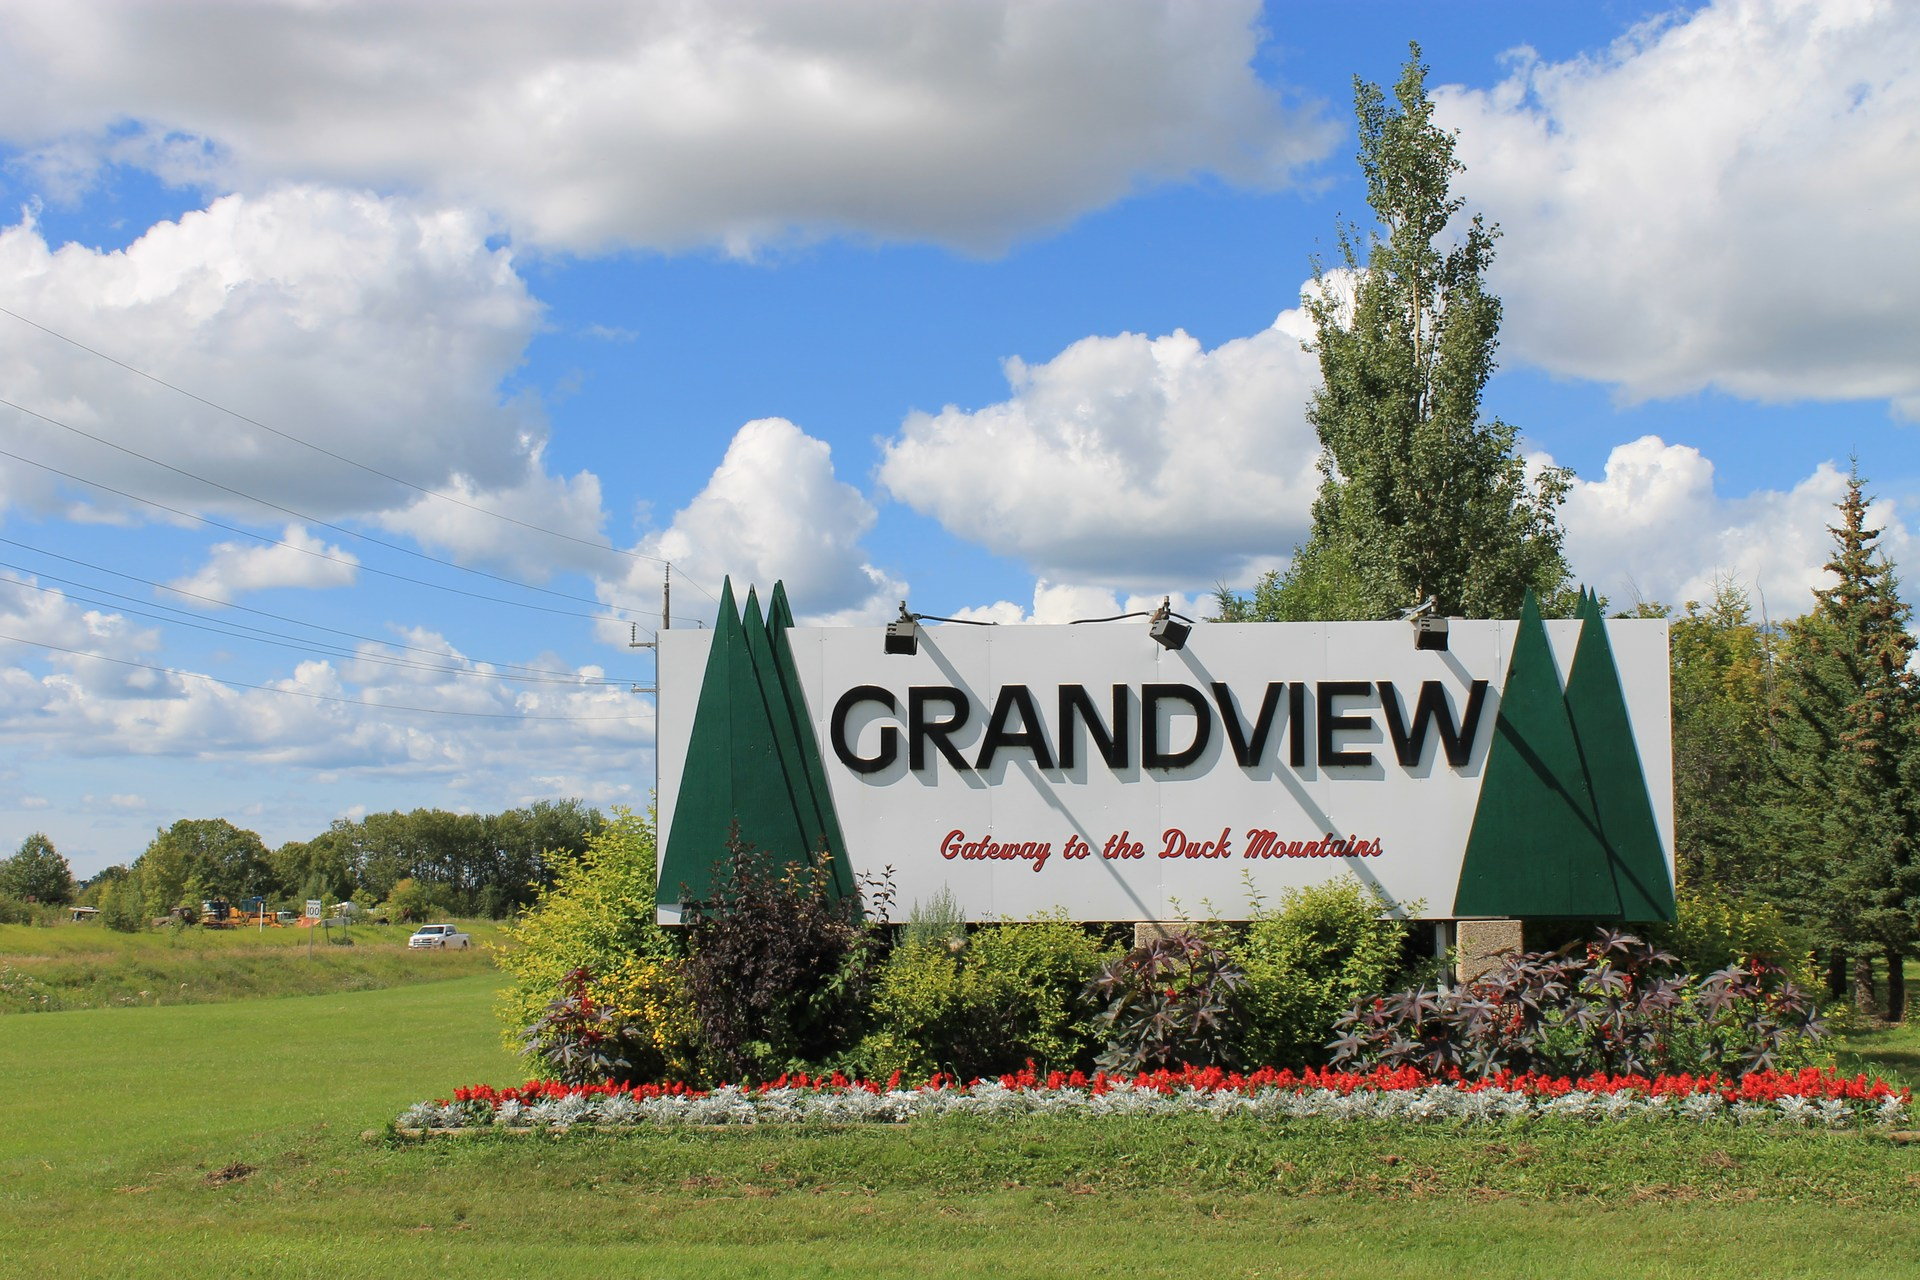 Grandview welcome sign